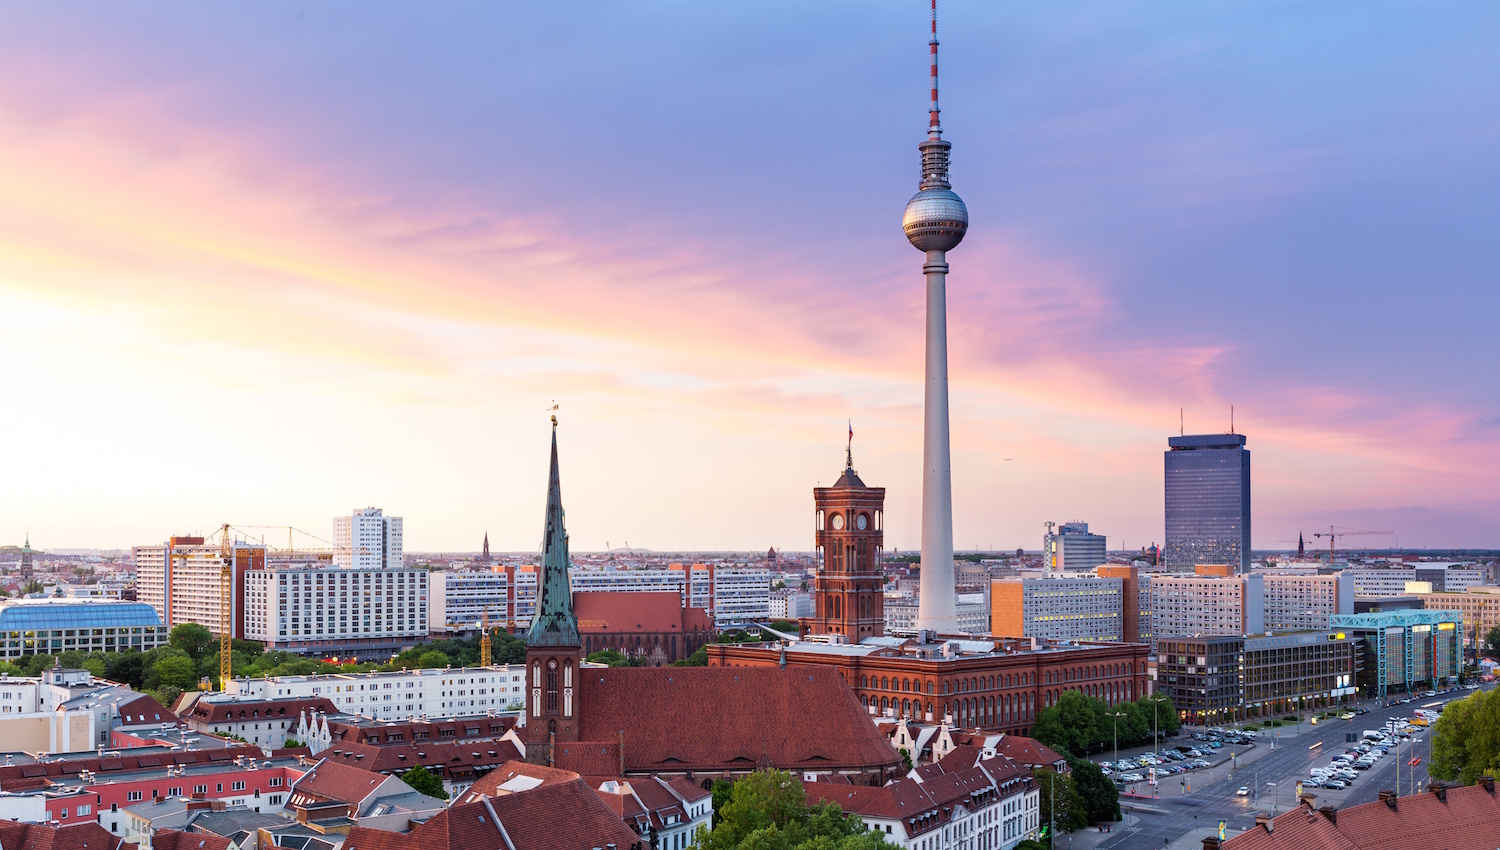 Berliner Platz 2 L Sungen alexanderplatz berlin book tours getyourguide